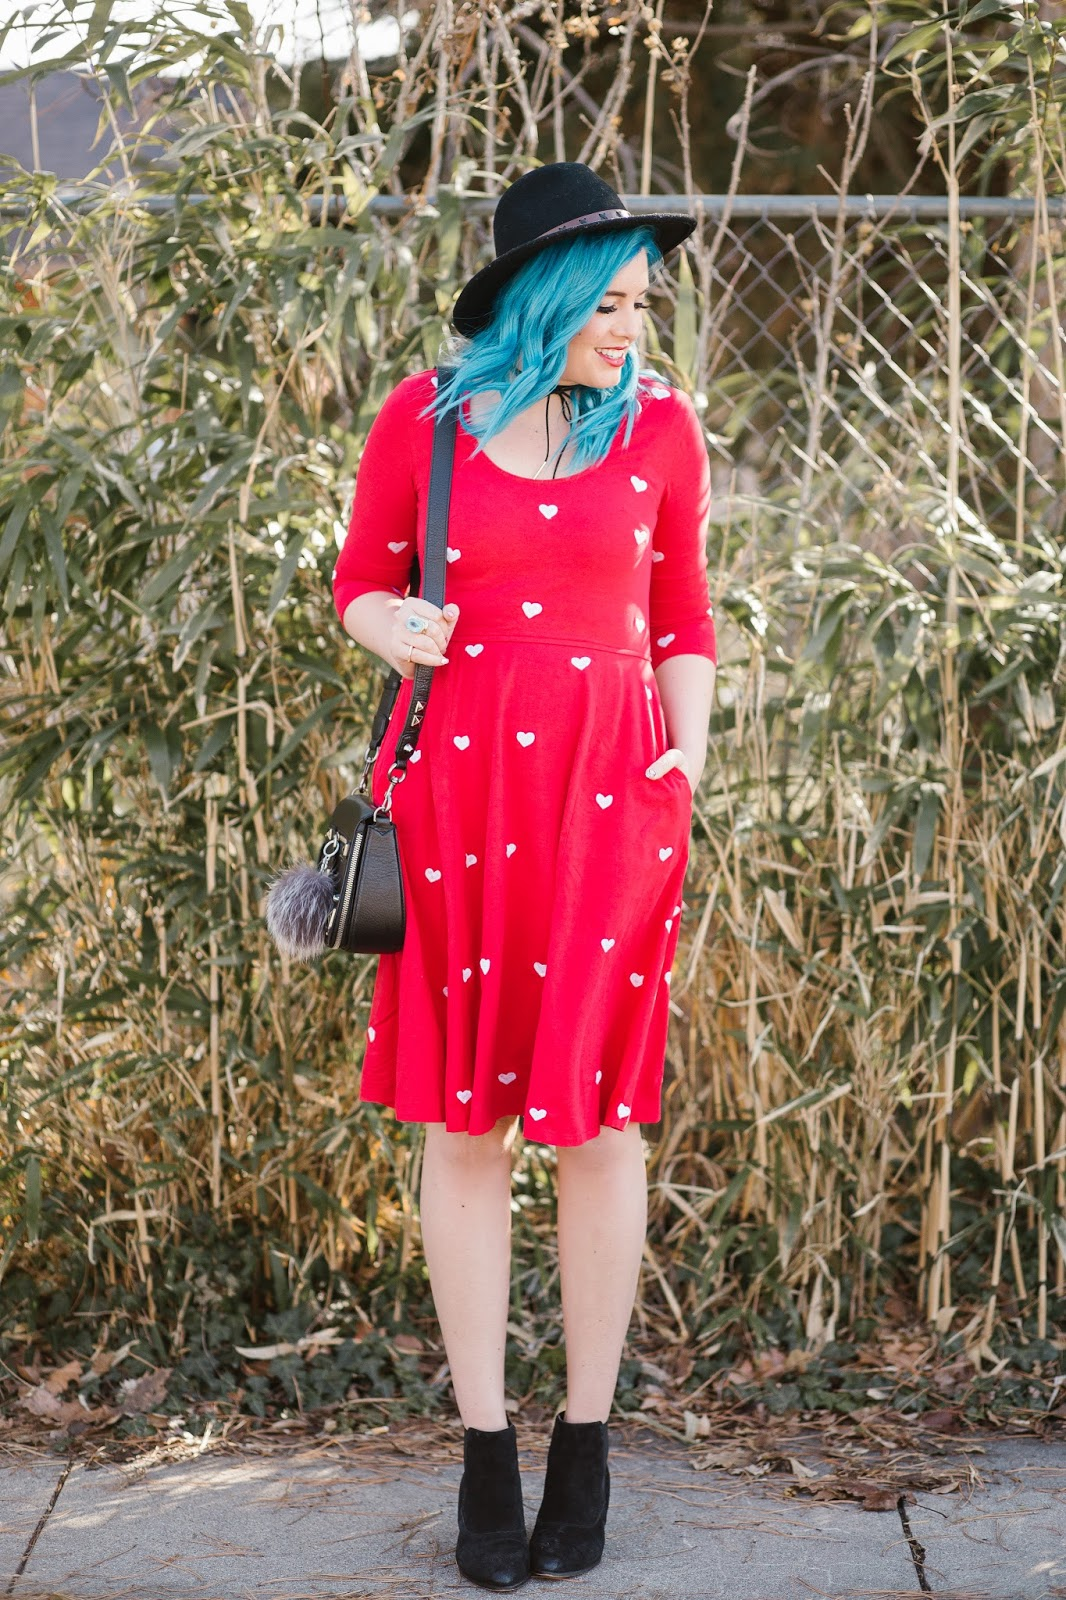 Cute Dress, Heart Dress, Utah Fashion Blogger